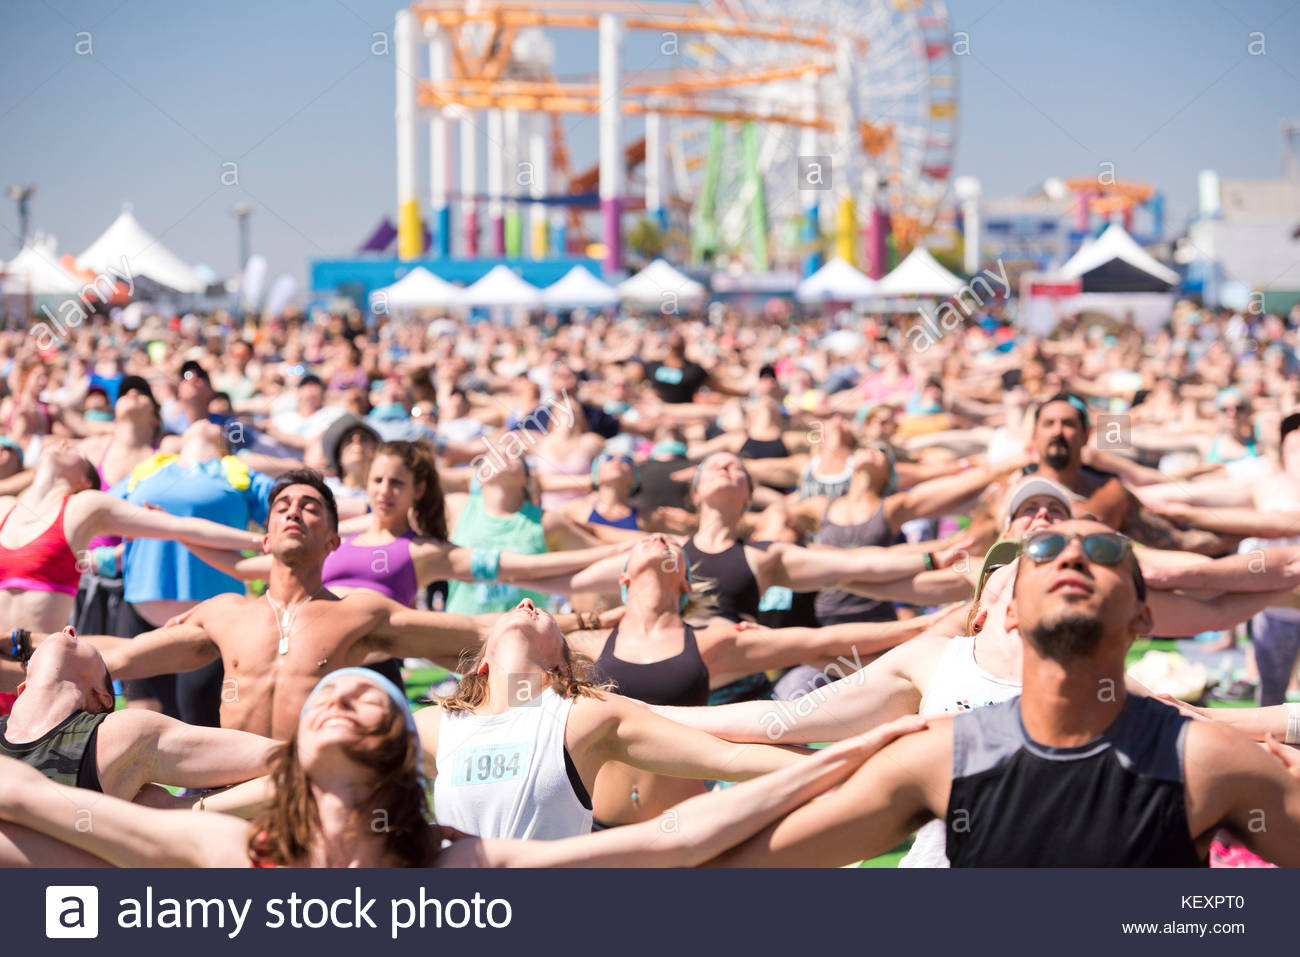 People stretching during outdoor yoga festival on Santa Monica Pier in Santa Monica, California, USA - Stock Image